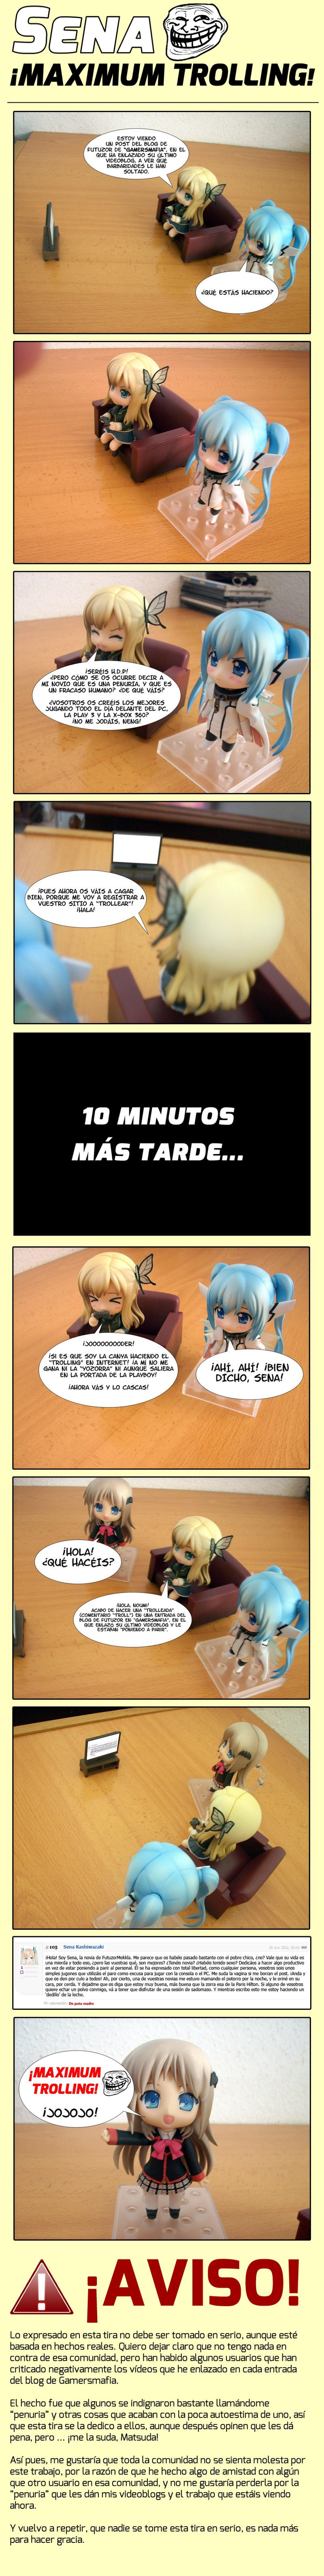 Sena ¡MAXIMUM TROLLING!